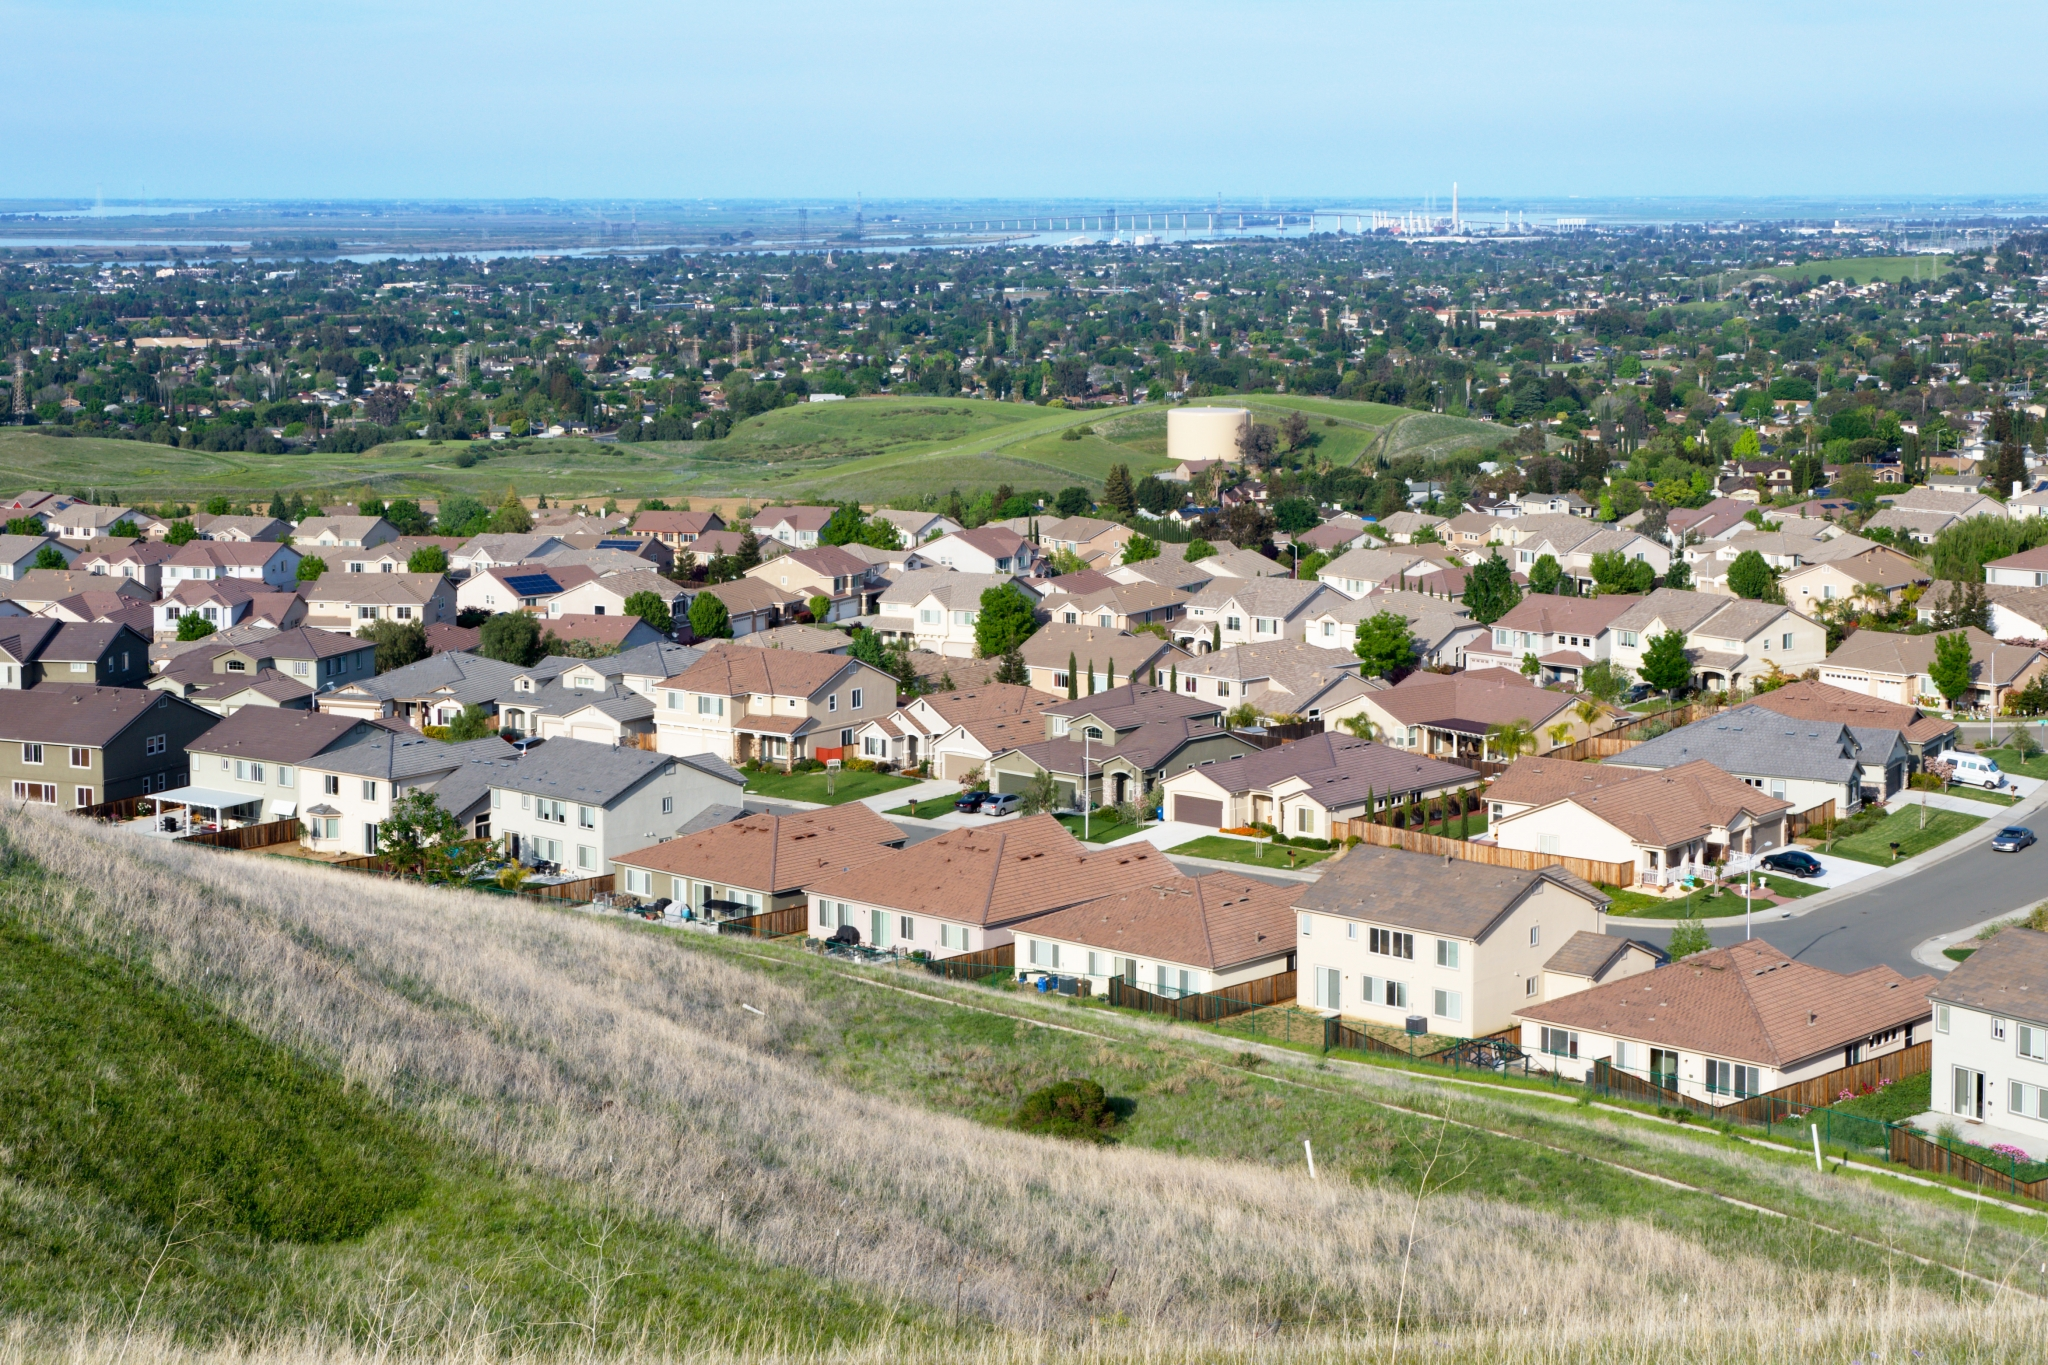 View of Antioch, CA.